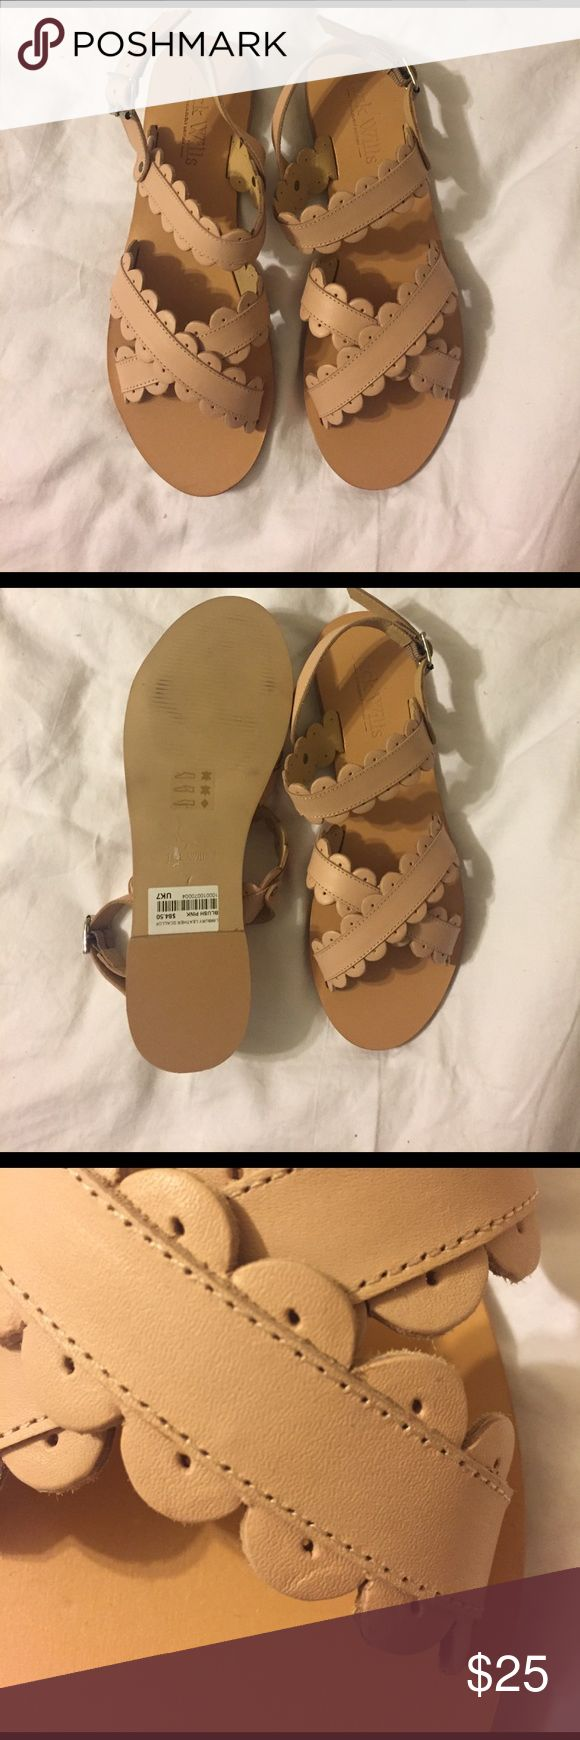 Jack Wills Nude Scallop Sandals Precious nude leather sandals with scallop detail by Jack Wills! Worn maybe once- price tag still attached! Great with summery dresses or ripped jeans and a blouse! If you have any questions feel free to ask :) Jack Wills Shoes Sandals